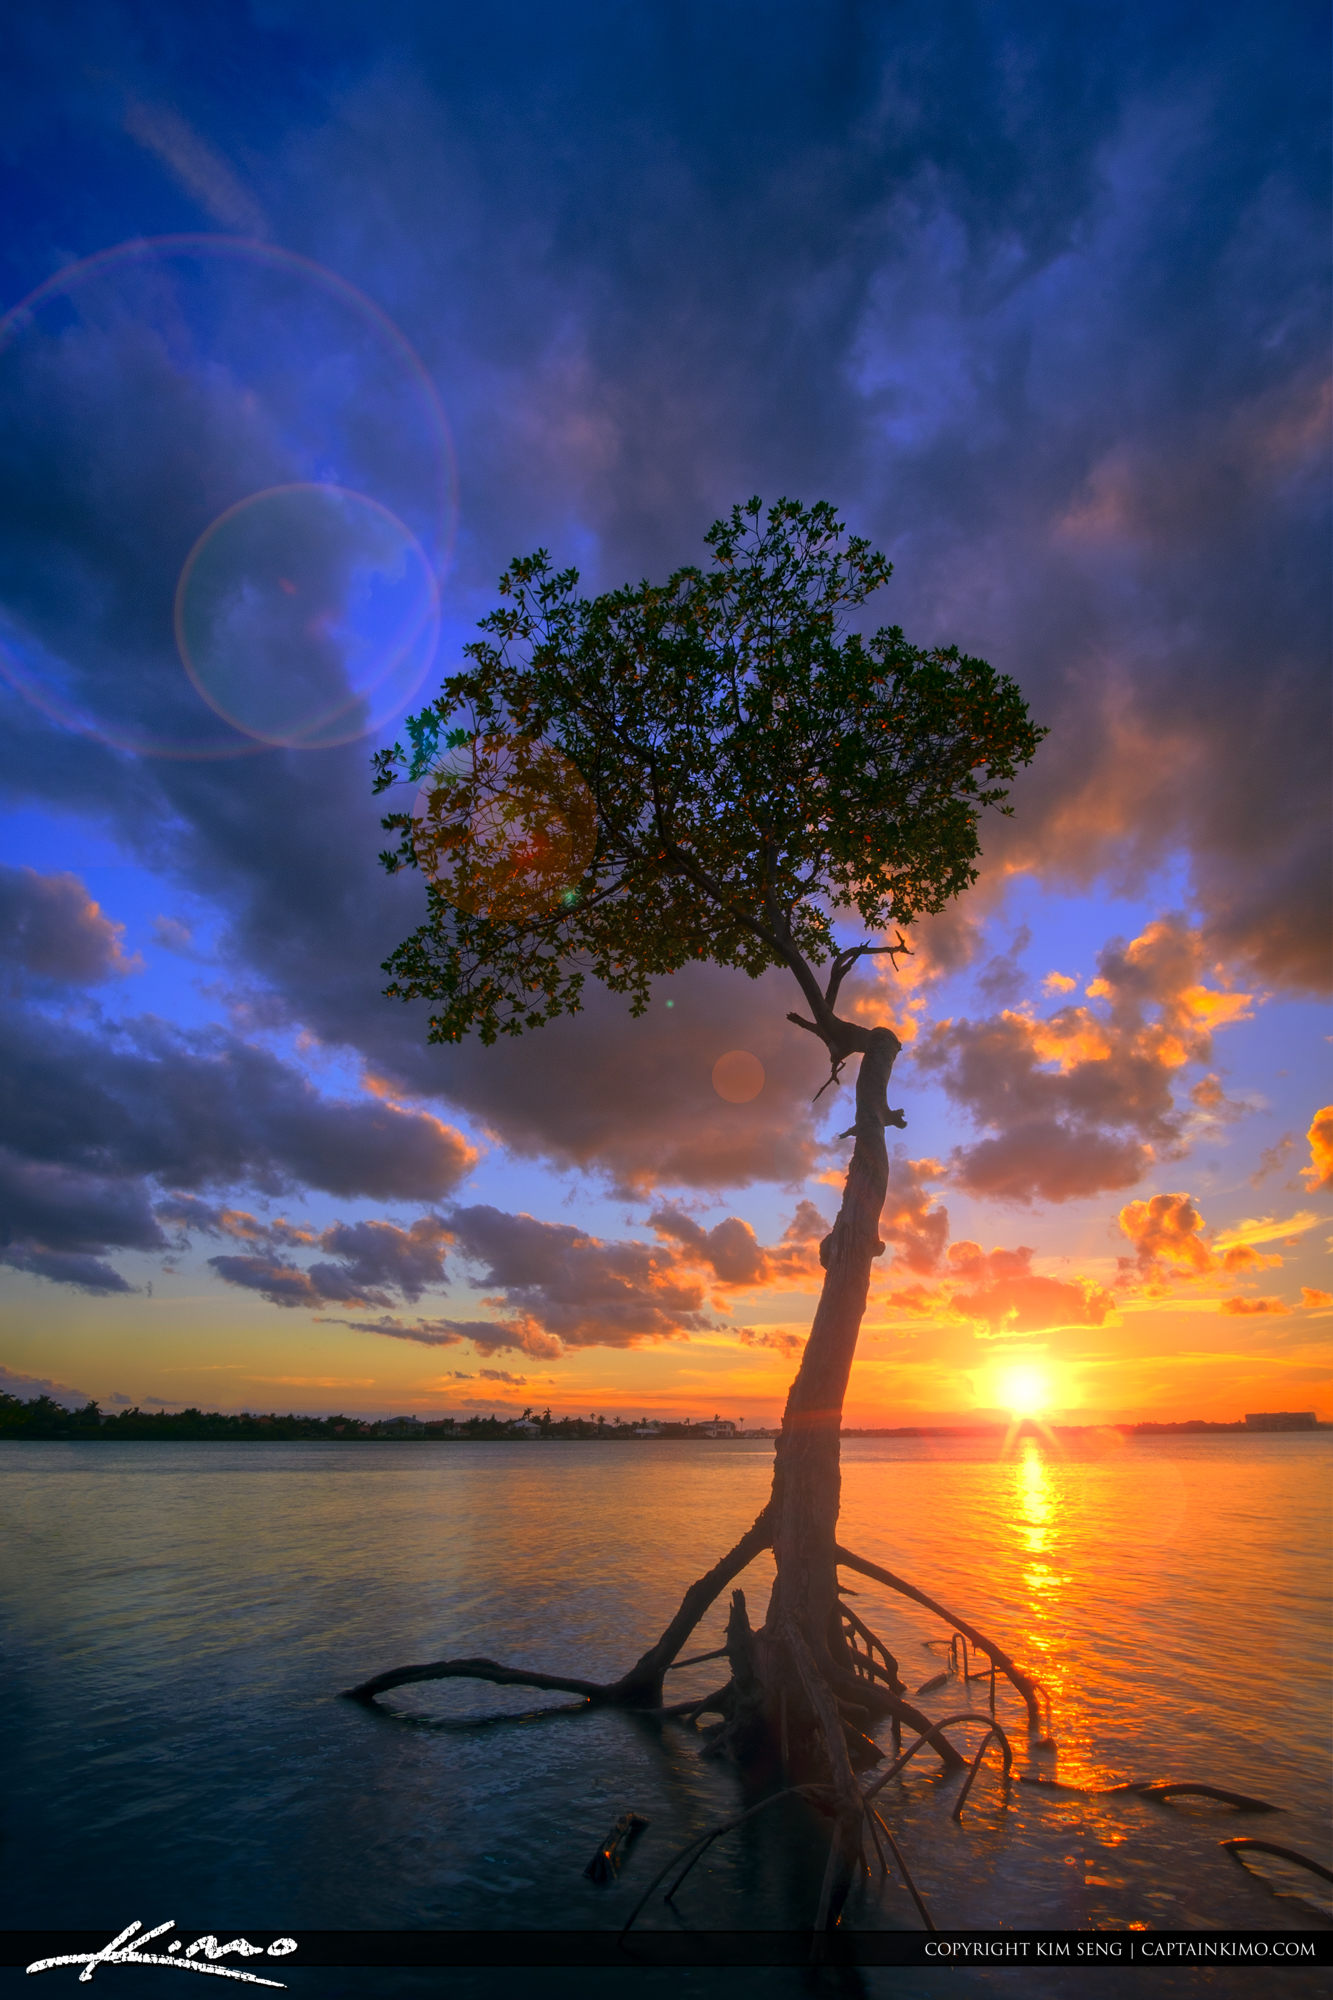 South Florida Sunset with Mangrove Tree